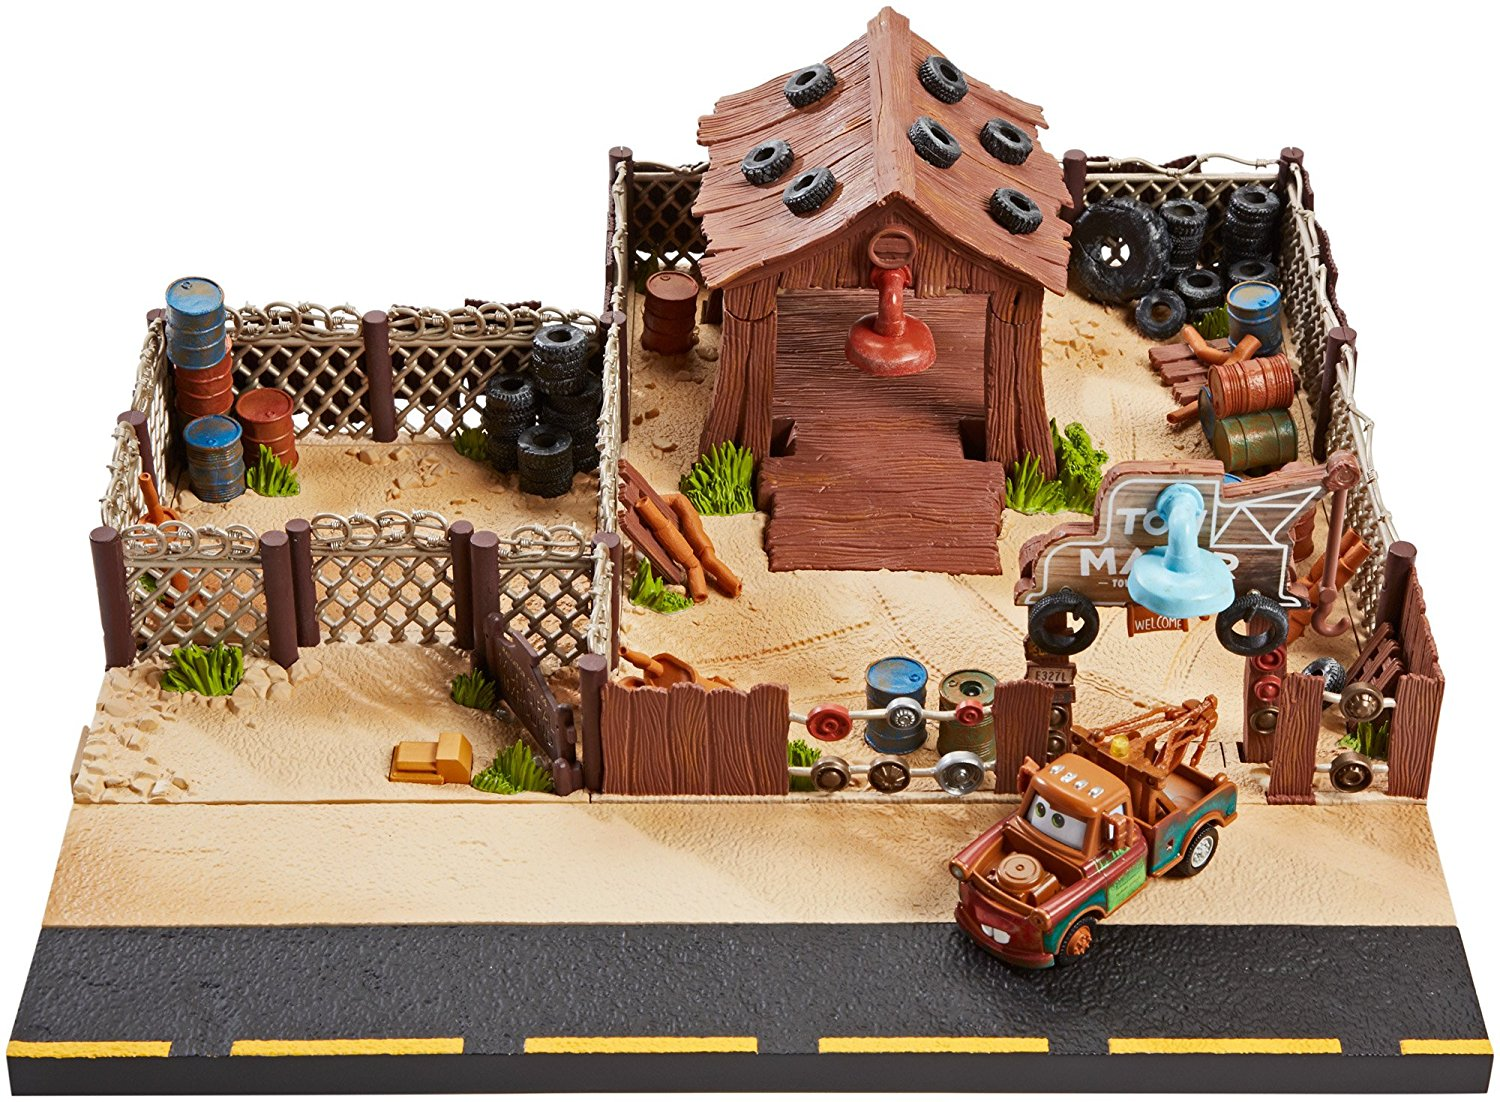 Cars Maters Towing and Salvage Playset and Vehicle